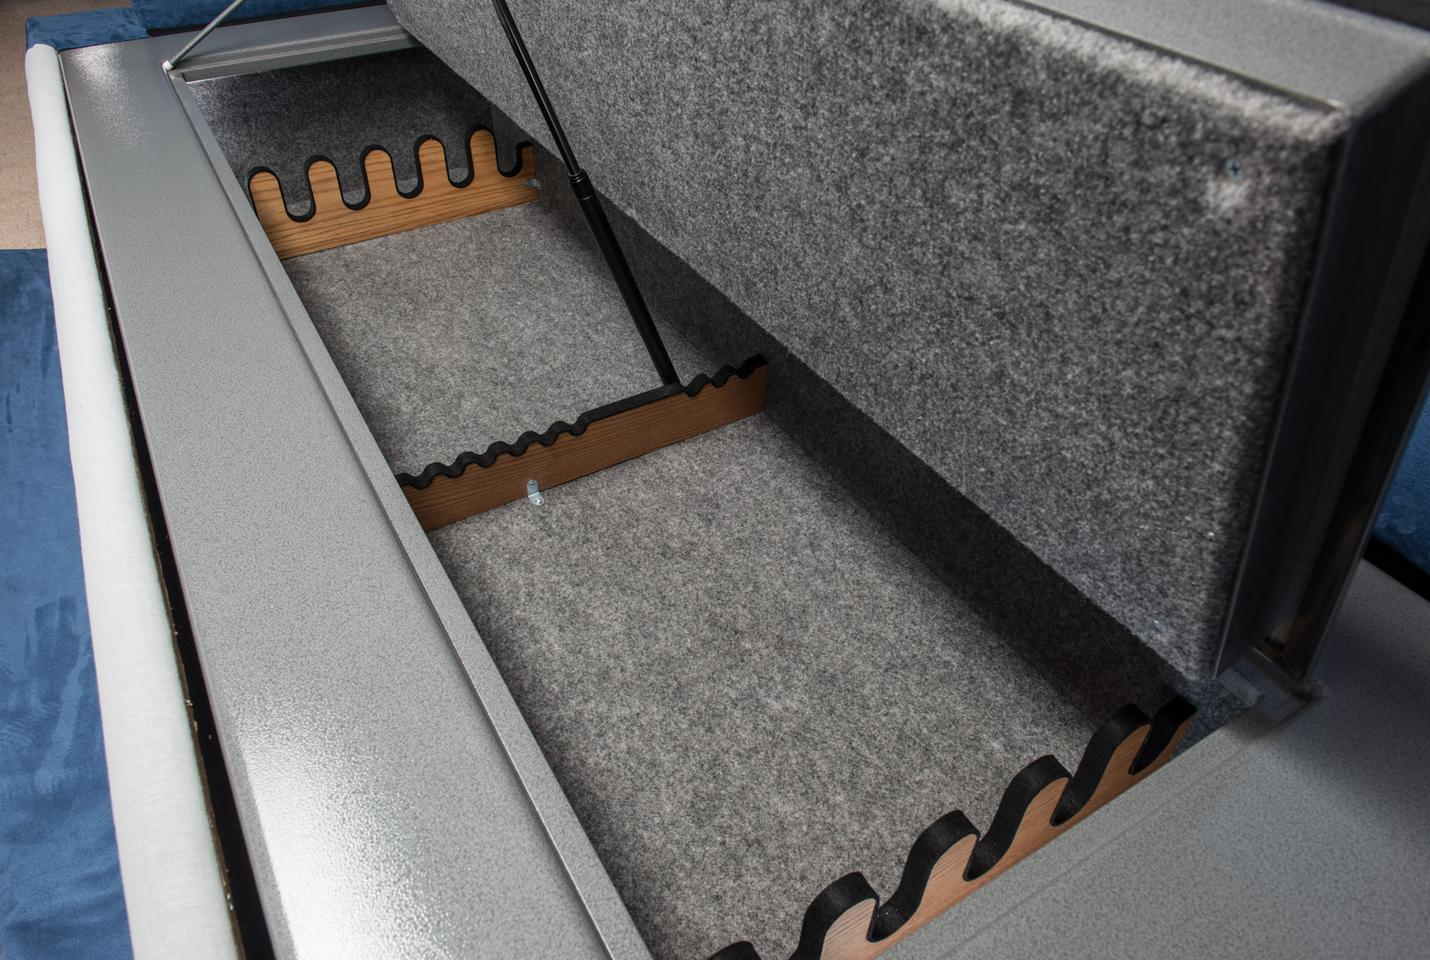 The gun safe itself measures 78 x 29.5 x 14 in (198 x 75 x 36 cm), which the company claims is enough to hold up to 30 rifles with room left over for some ammo, smaller guns, or any other objects you want locked up